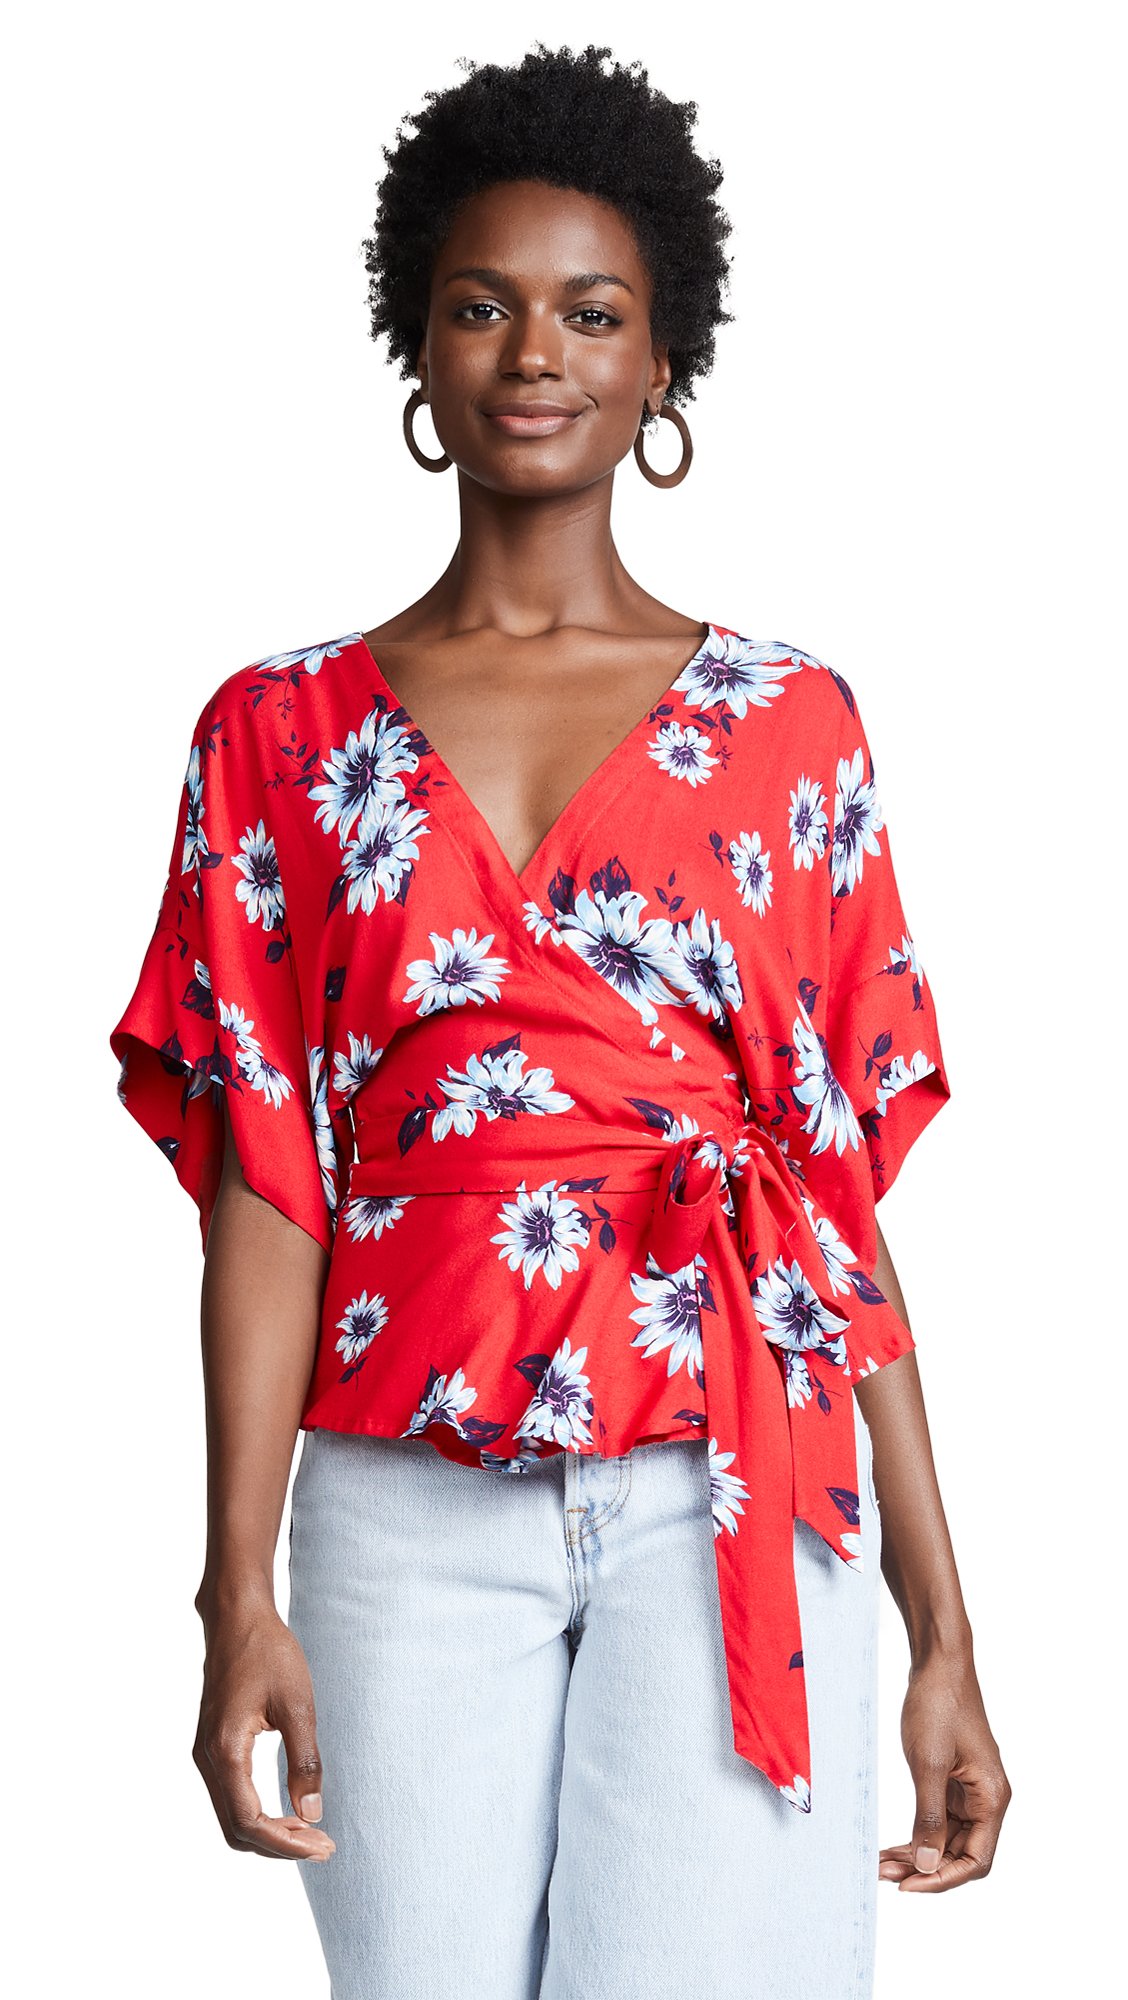 YUMI KIM That'S A Wrap Floral-Print Kimono Top in Finders Keepers Red